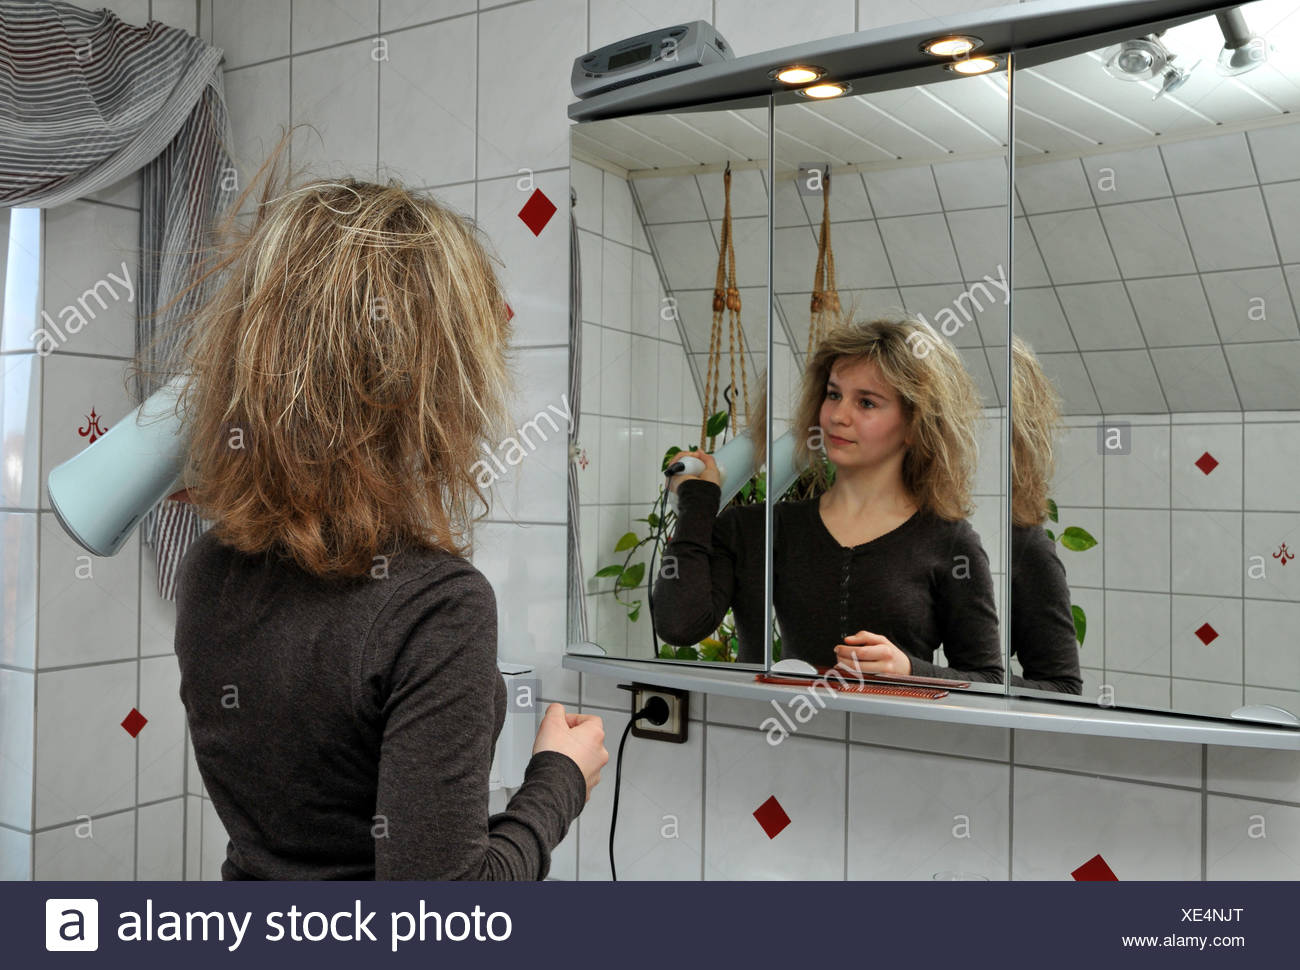 blow dry hair - Stock Image